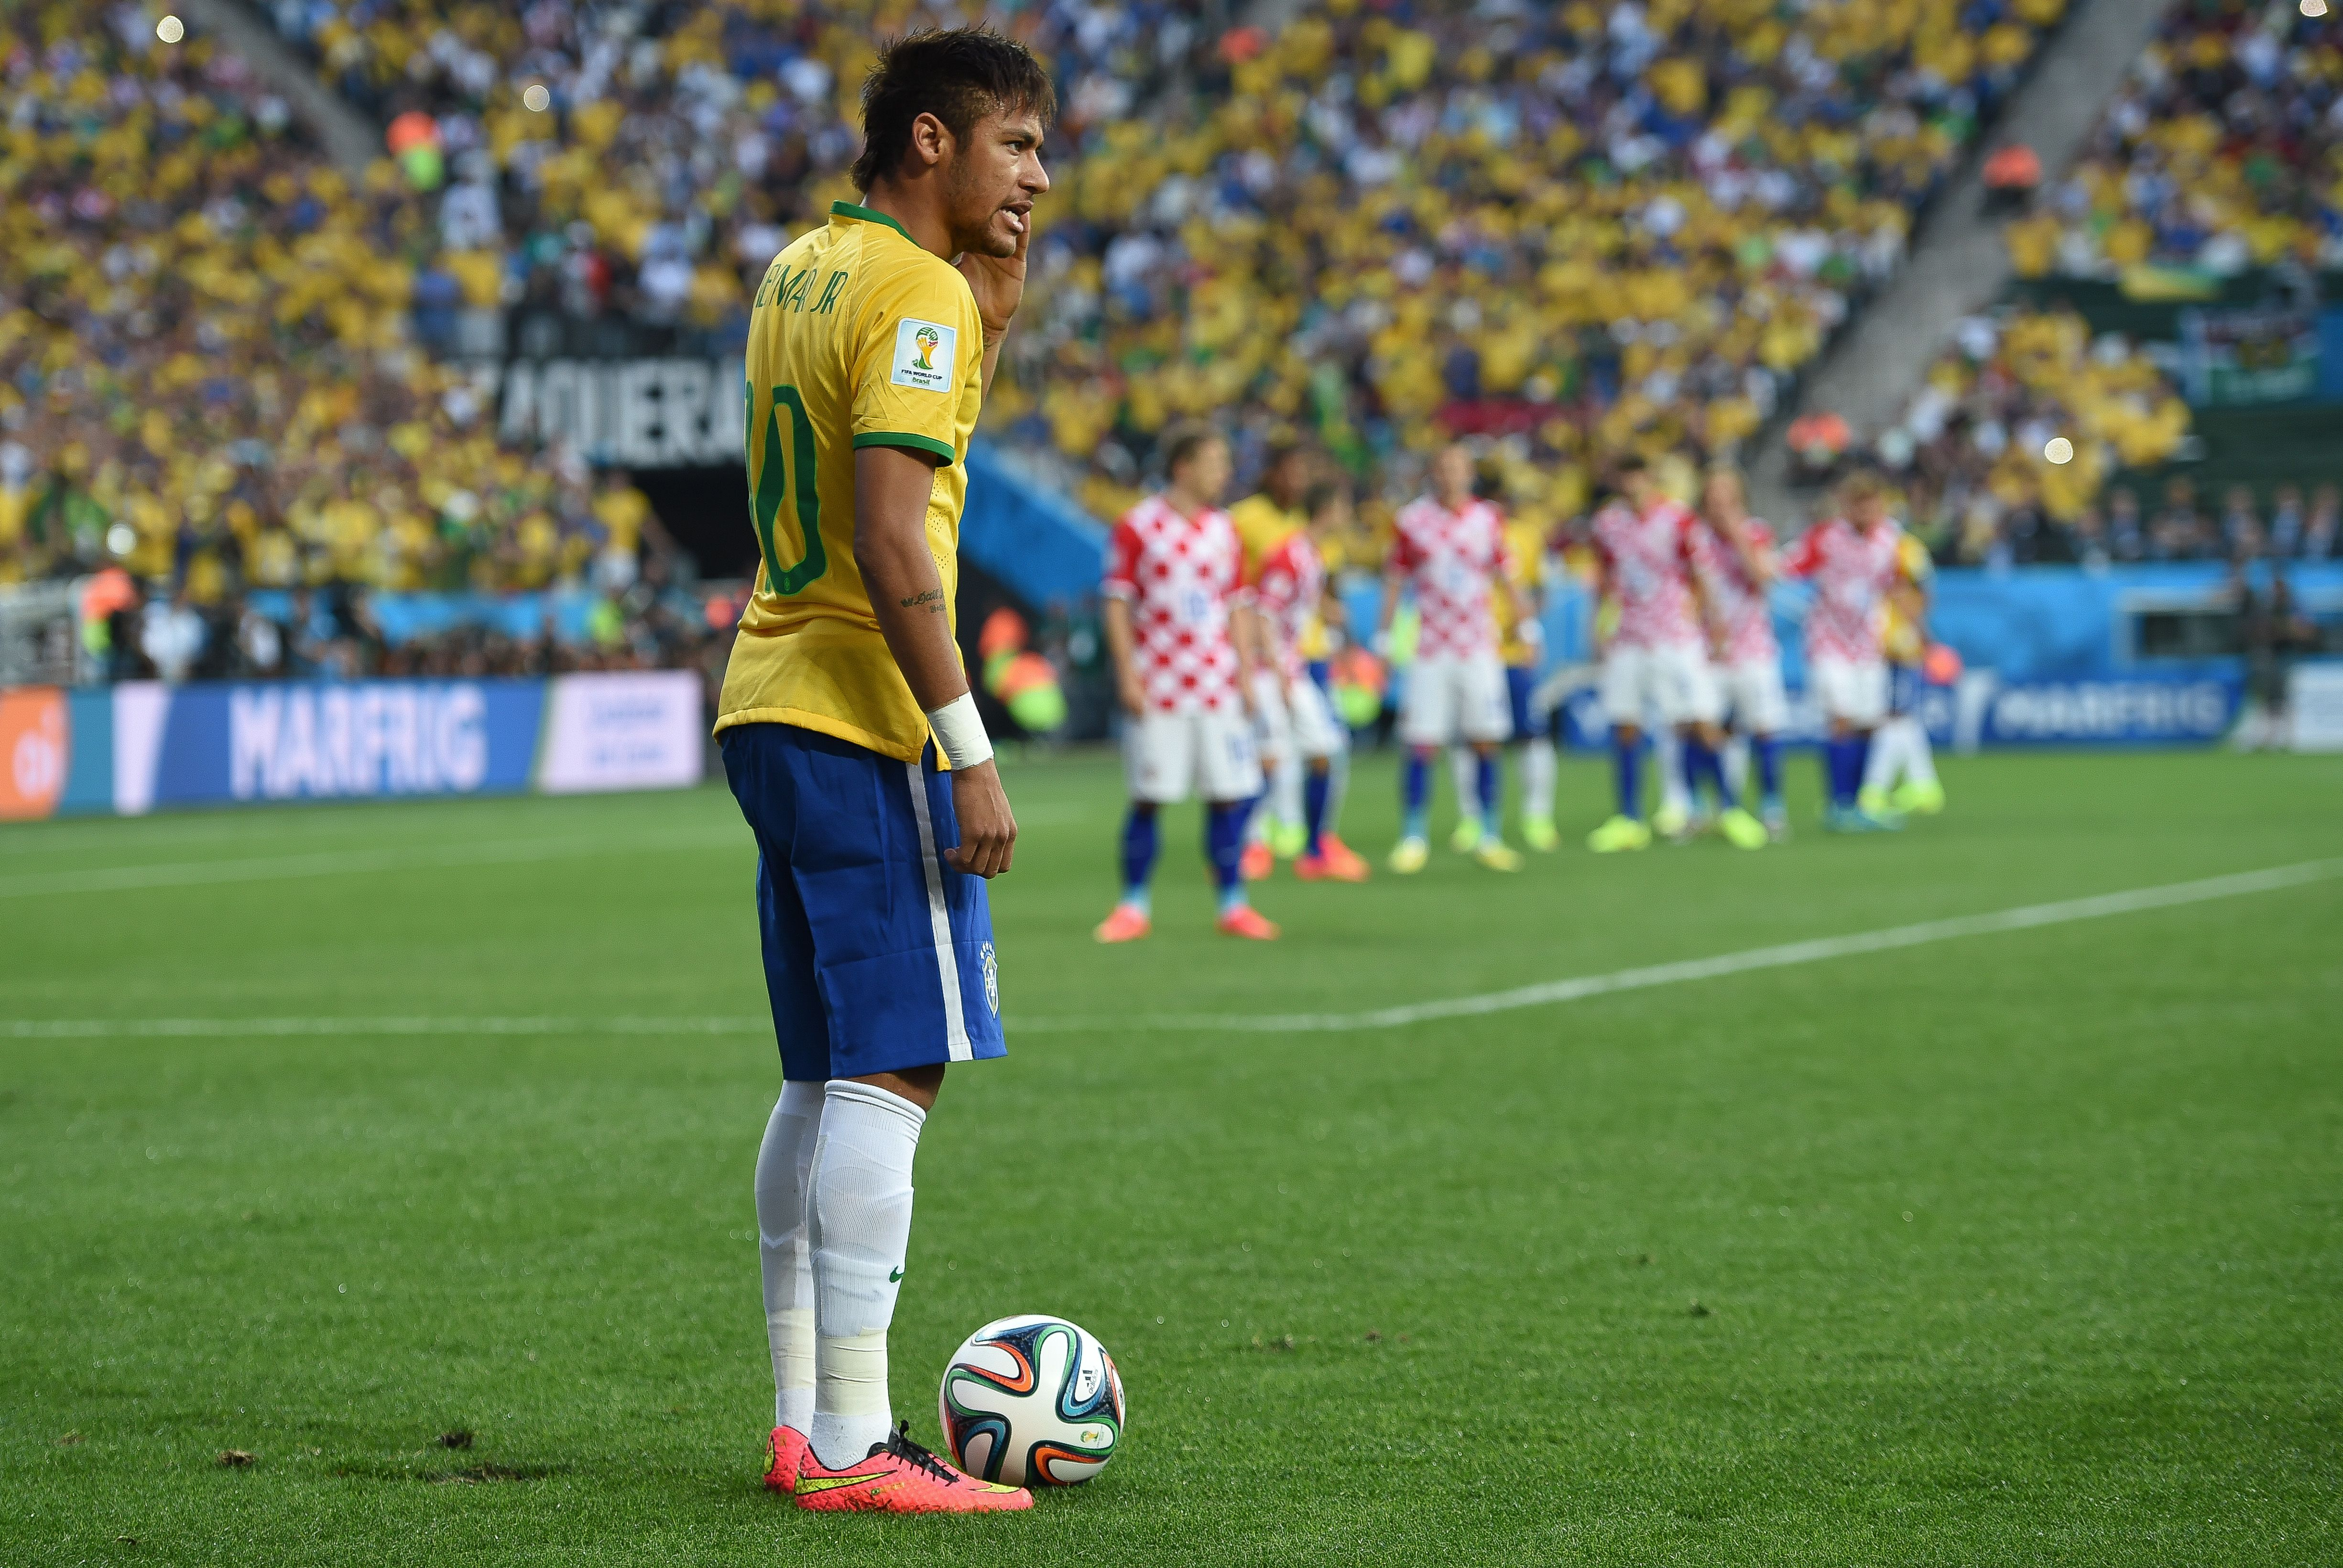 Description Brazil and Croatia match at the FIFA World Cup 2014-06-12